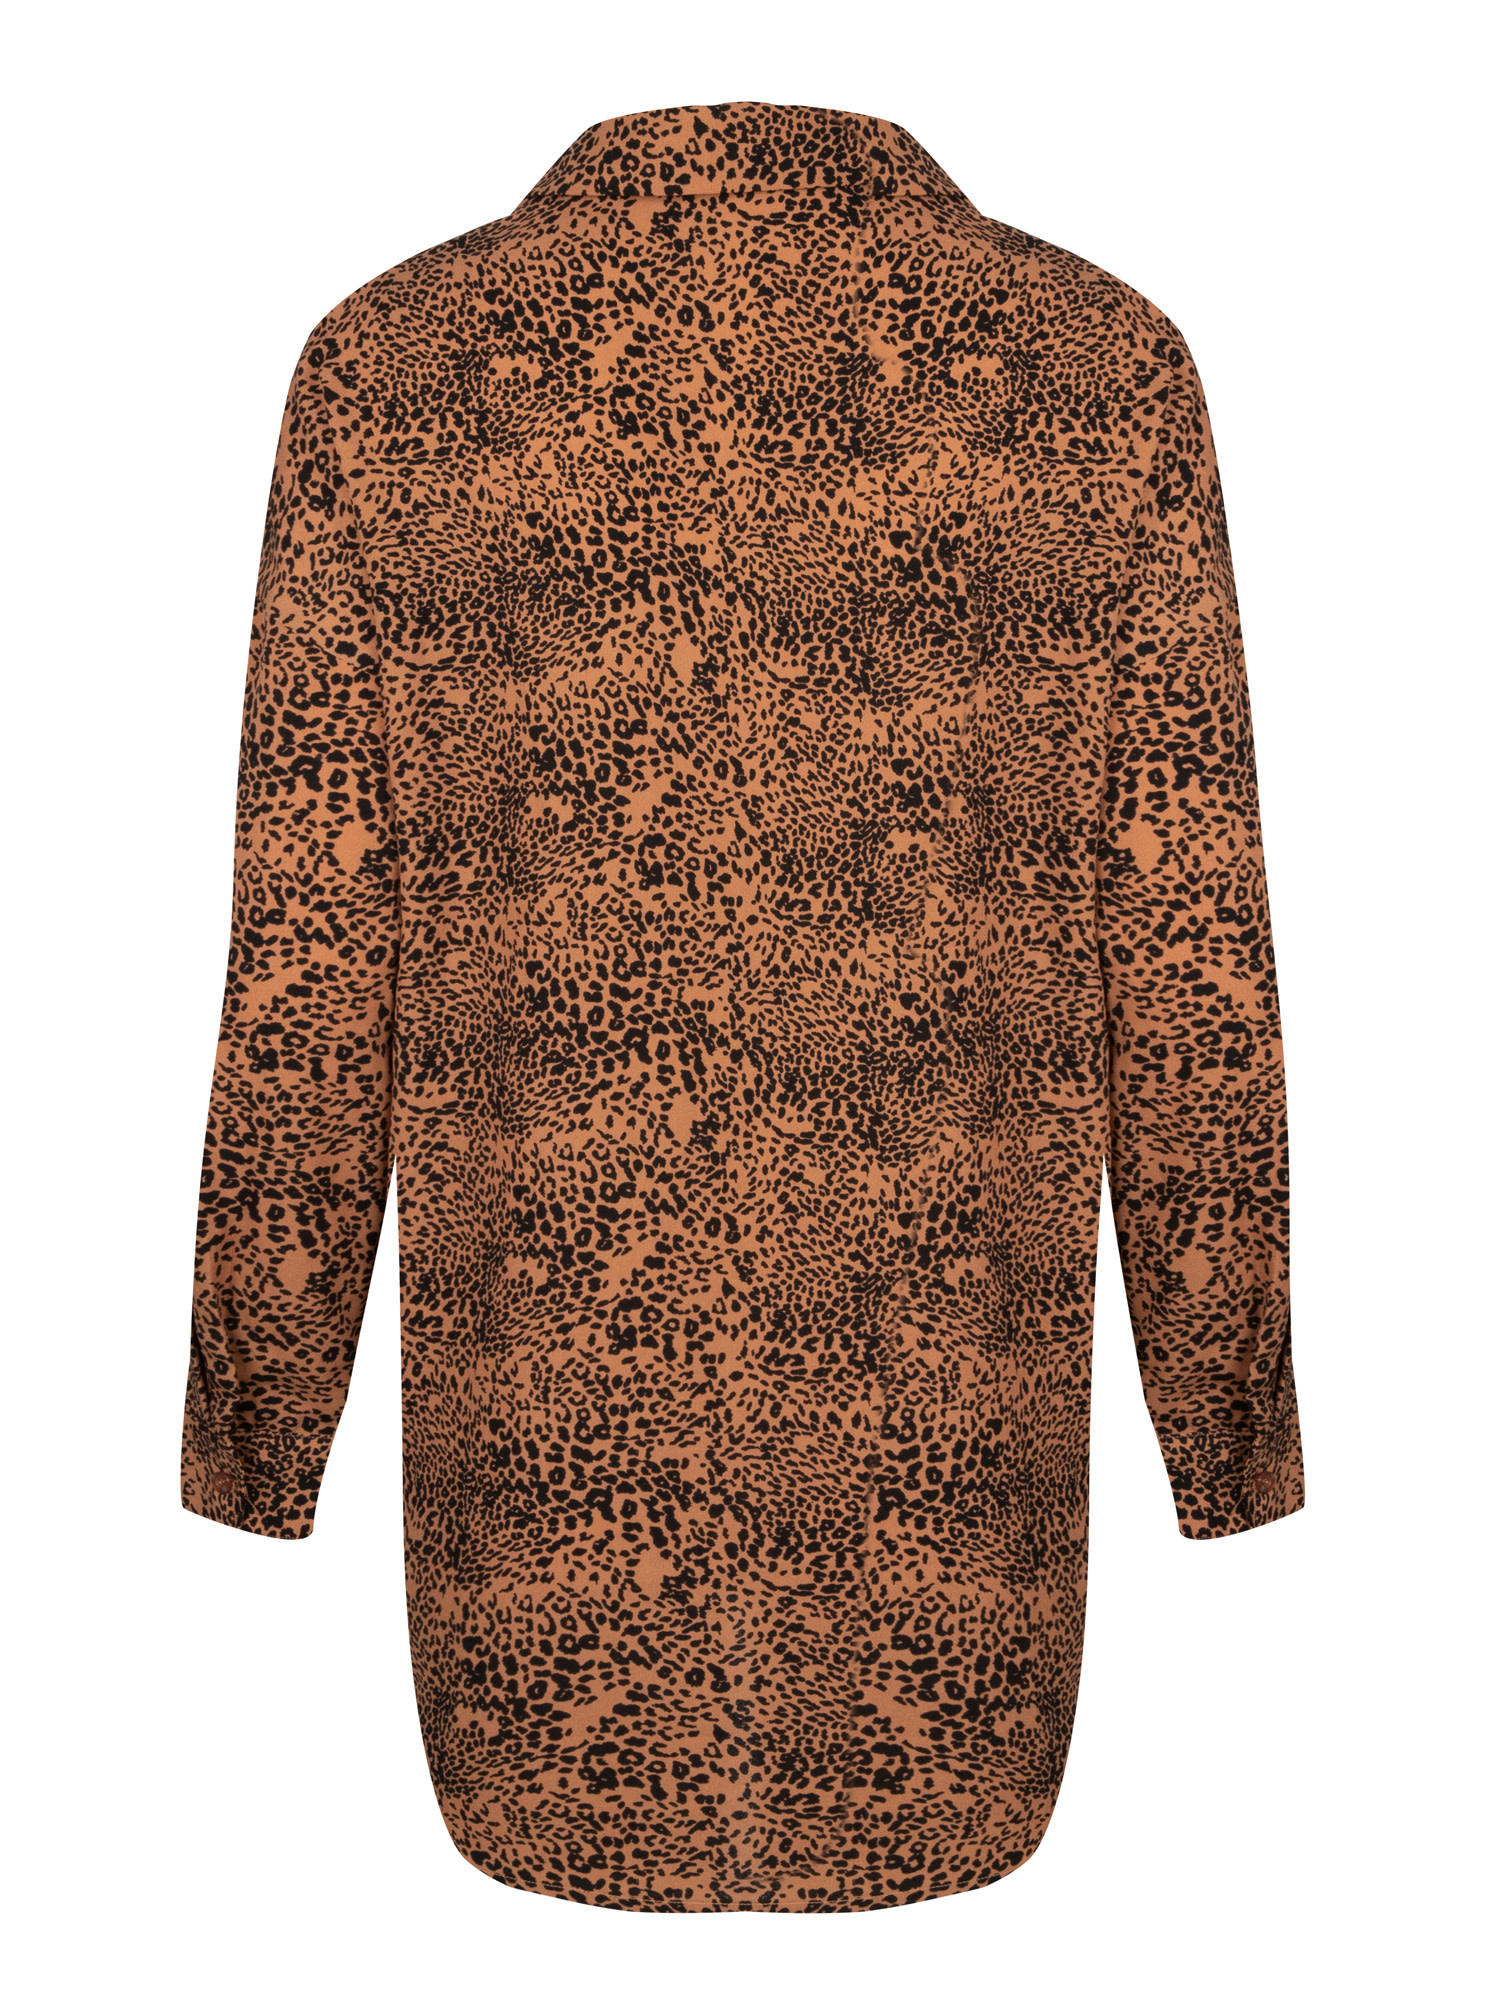 YDENCE YDENCE - Blouse Amber met leopard print